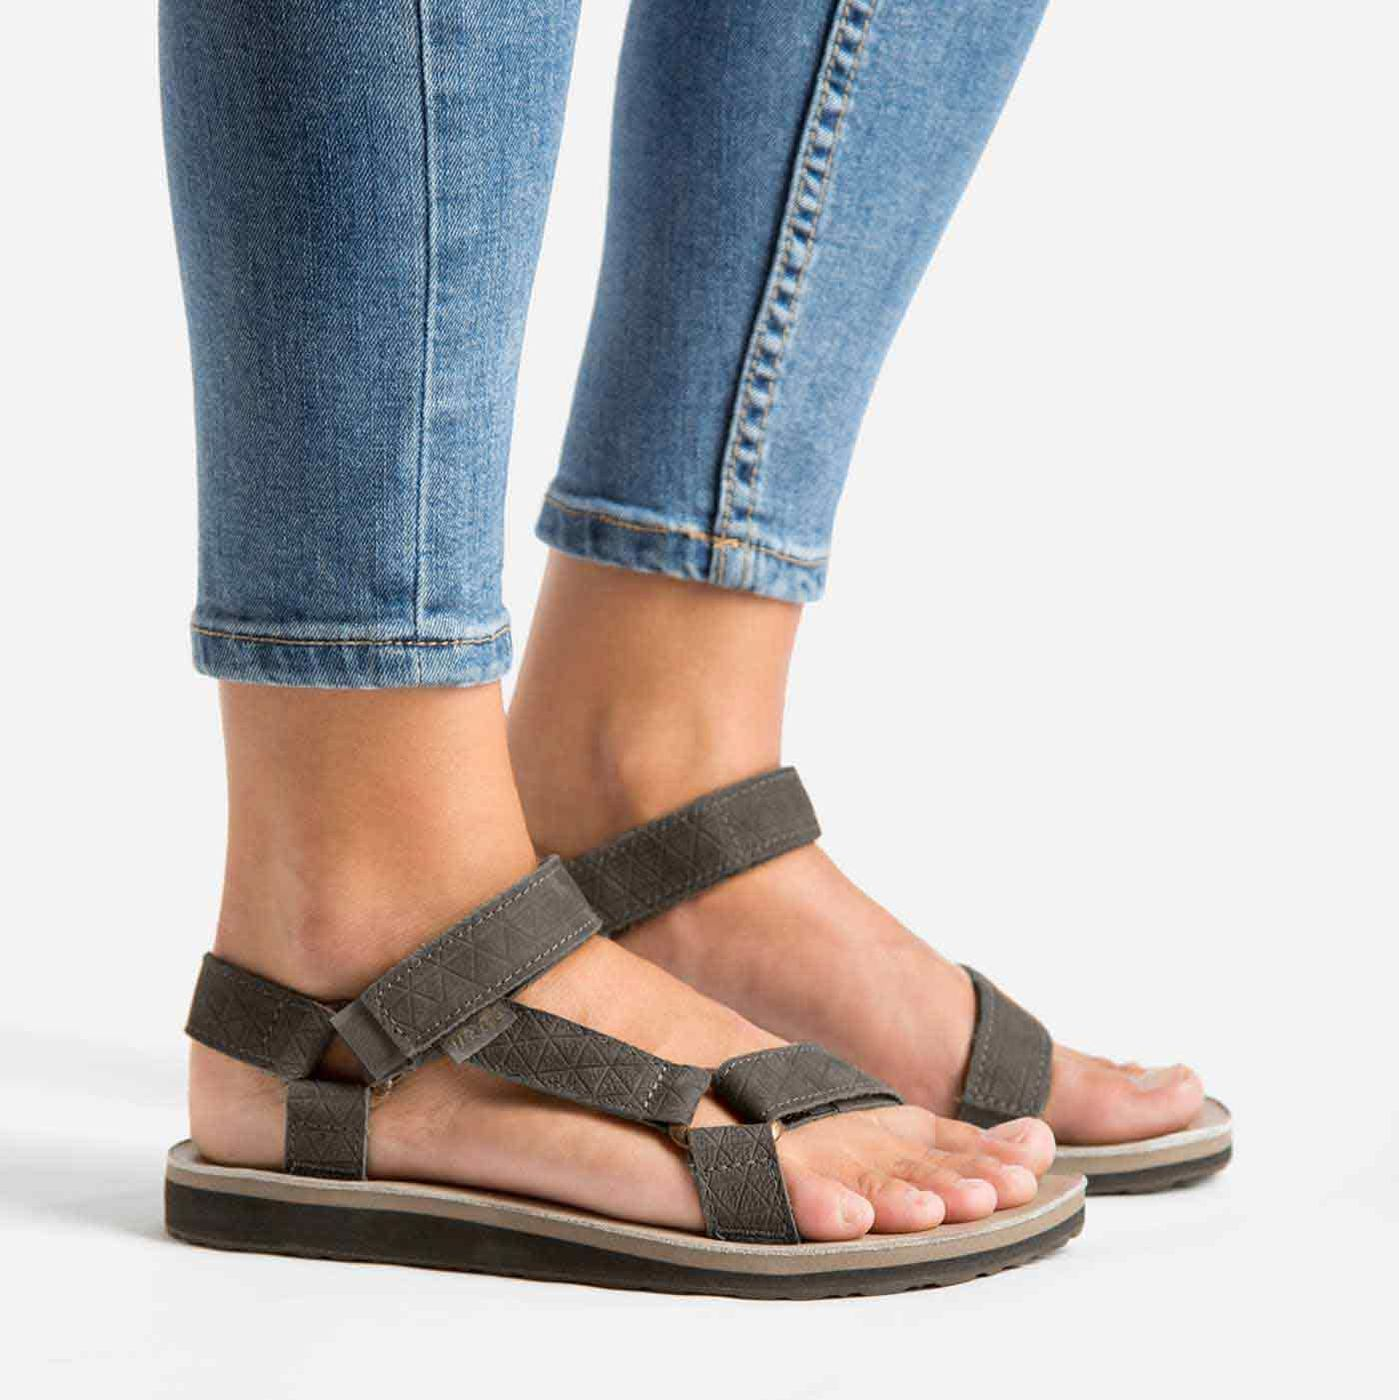 6f85ebd7f579 Free Shipping   Free Returns on Authentic Teva® Women s Sandals. Shop our  Collection of sandals for women including the Original Universal Leather  Diamond ...